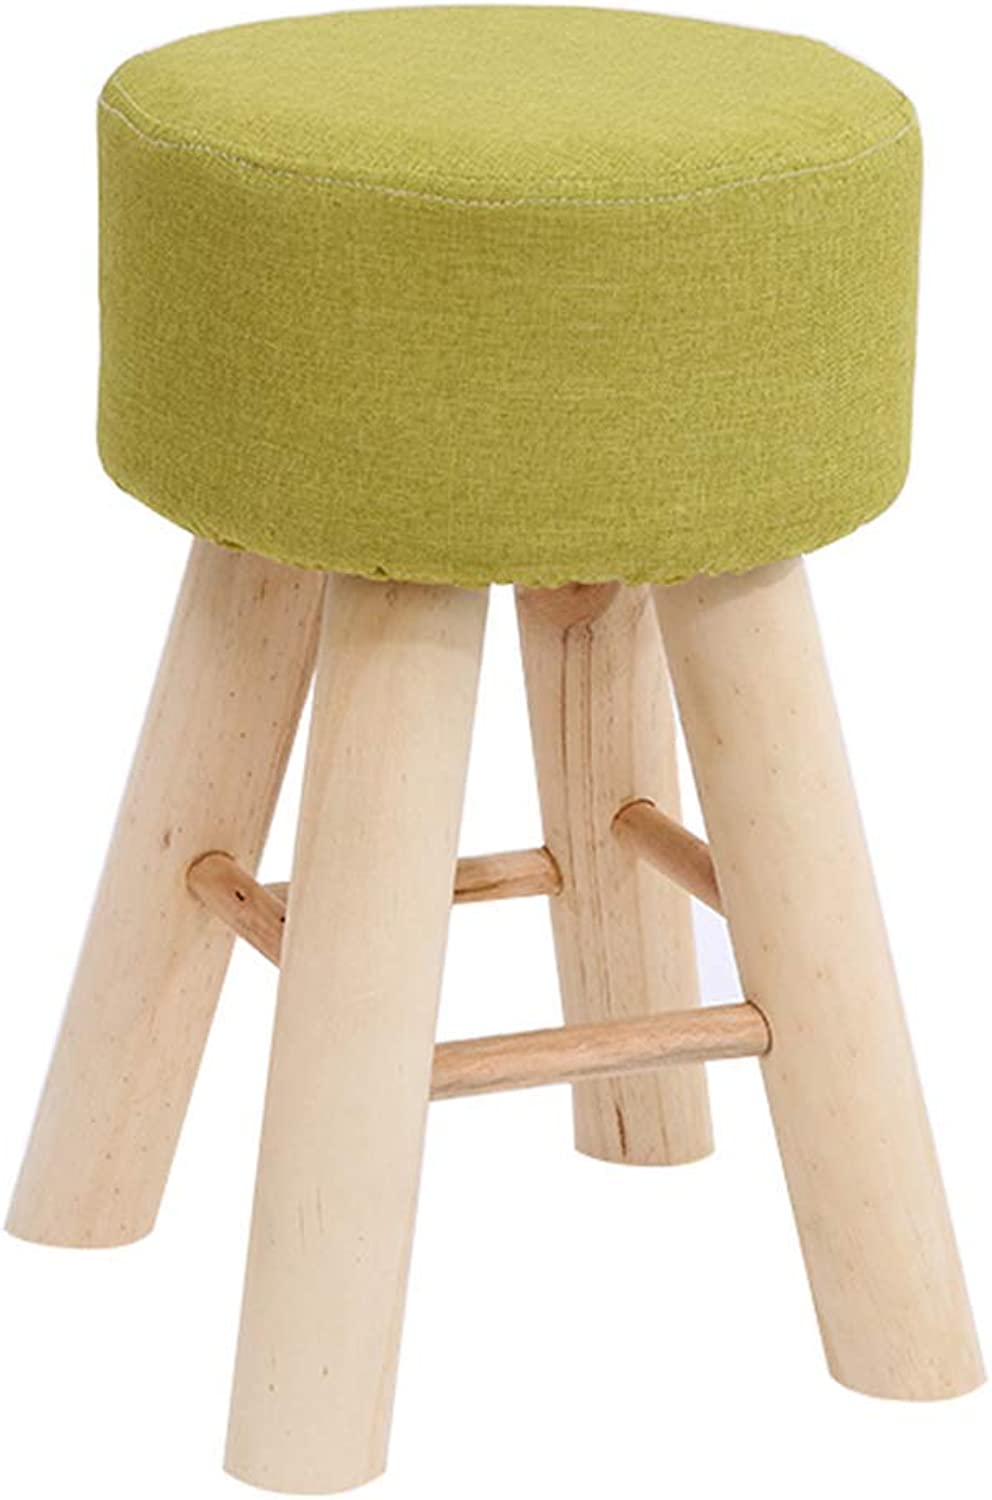 ChenDz Cute Stool Nordic Minimalist Creative Home, Change shoes, Small Stool, Solid Wood Stool, shoes, Bench, Fabric Sofa Stool, orange